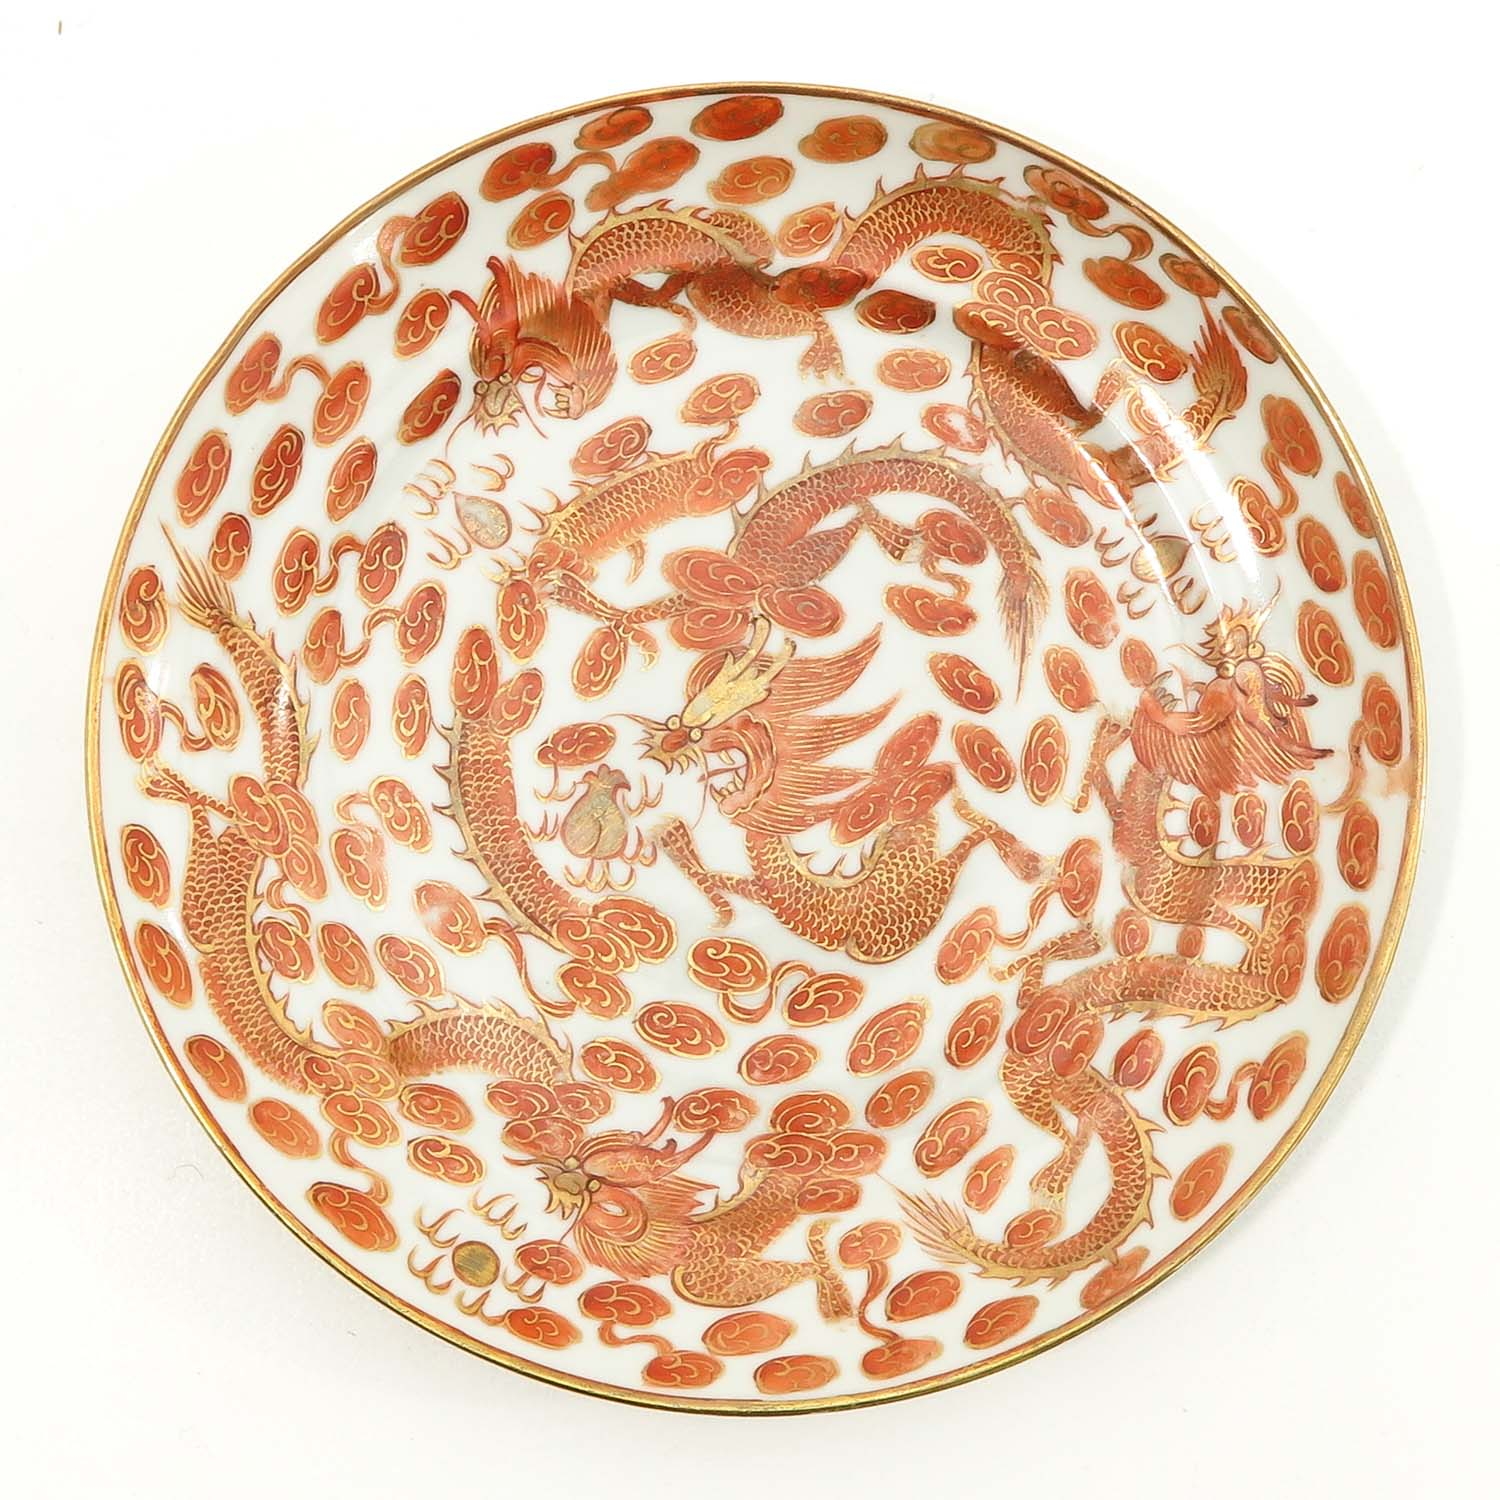 A Collection of 3 Plates - Image 3 of 10